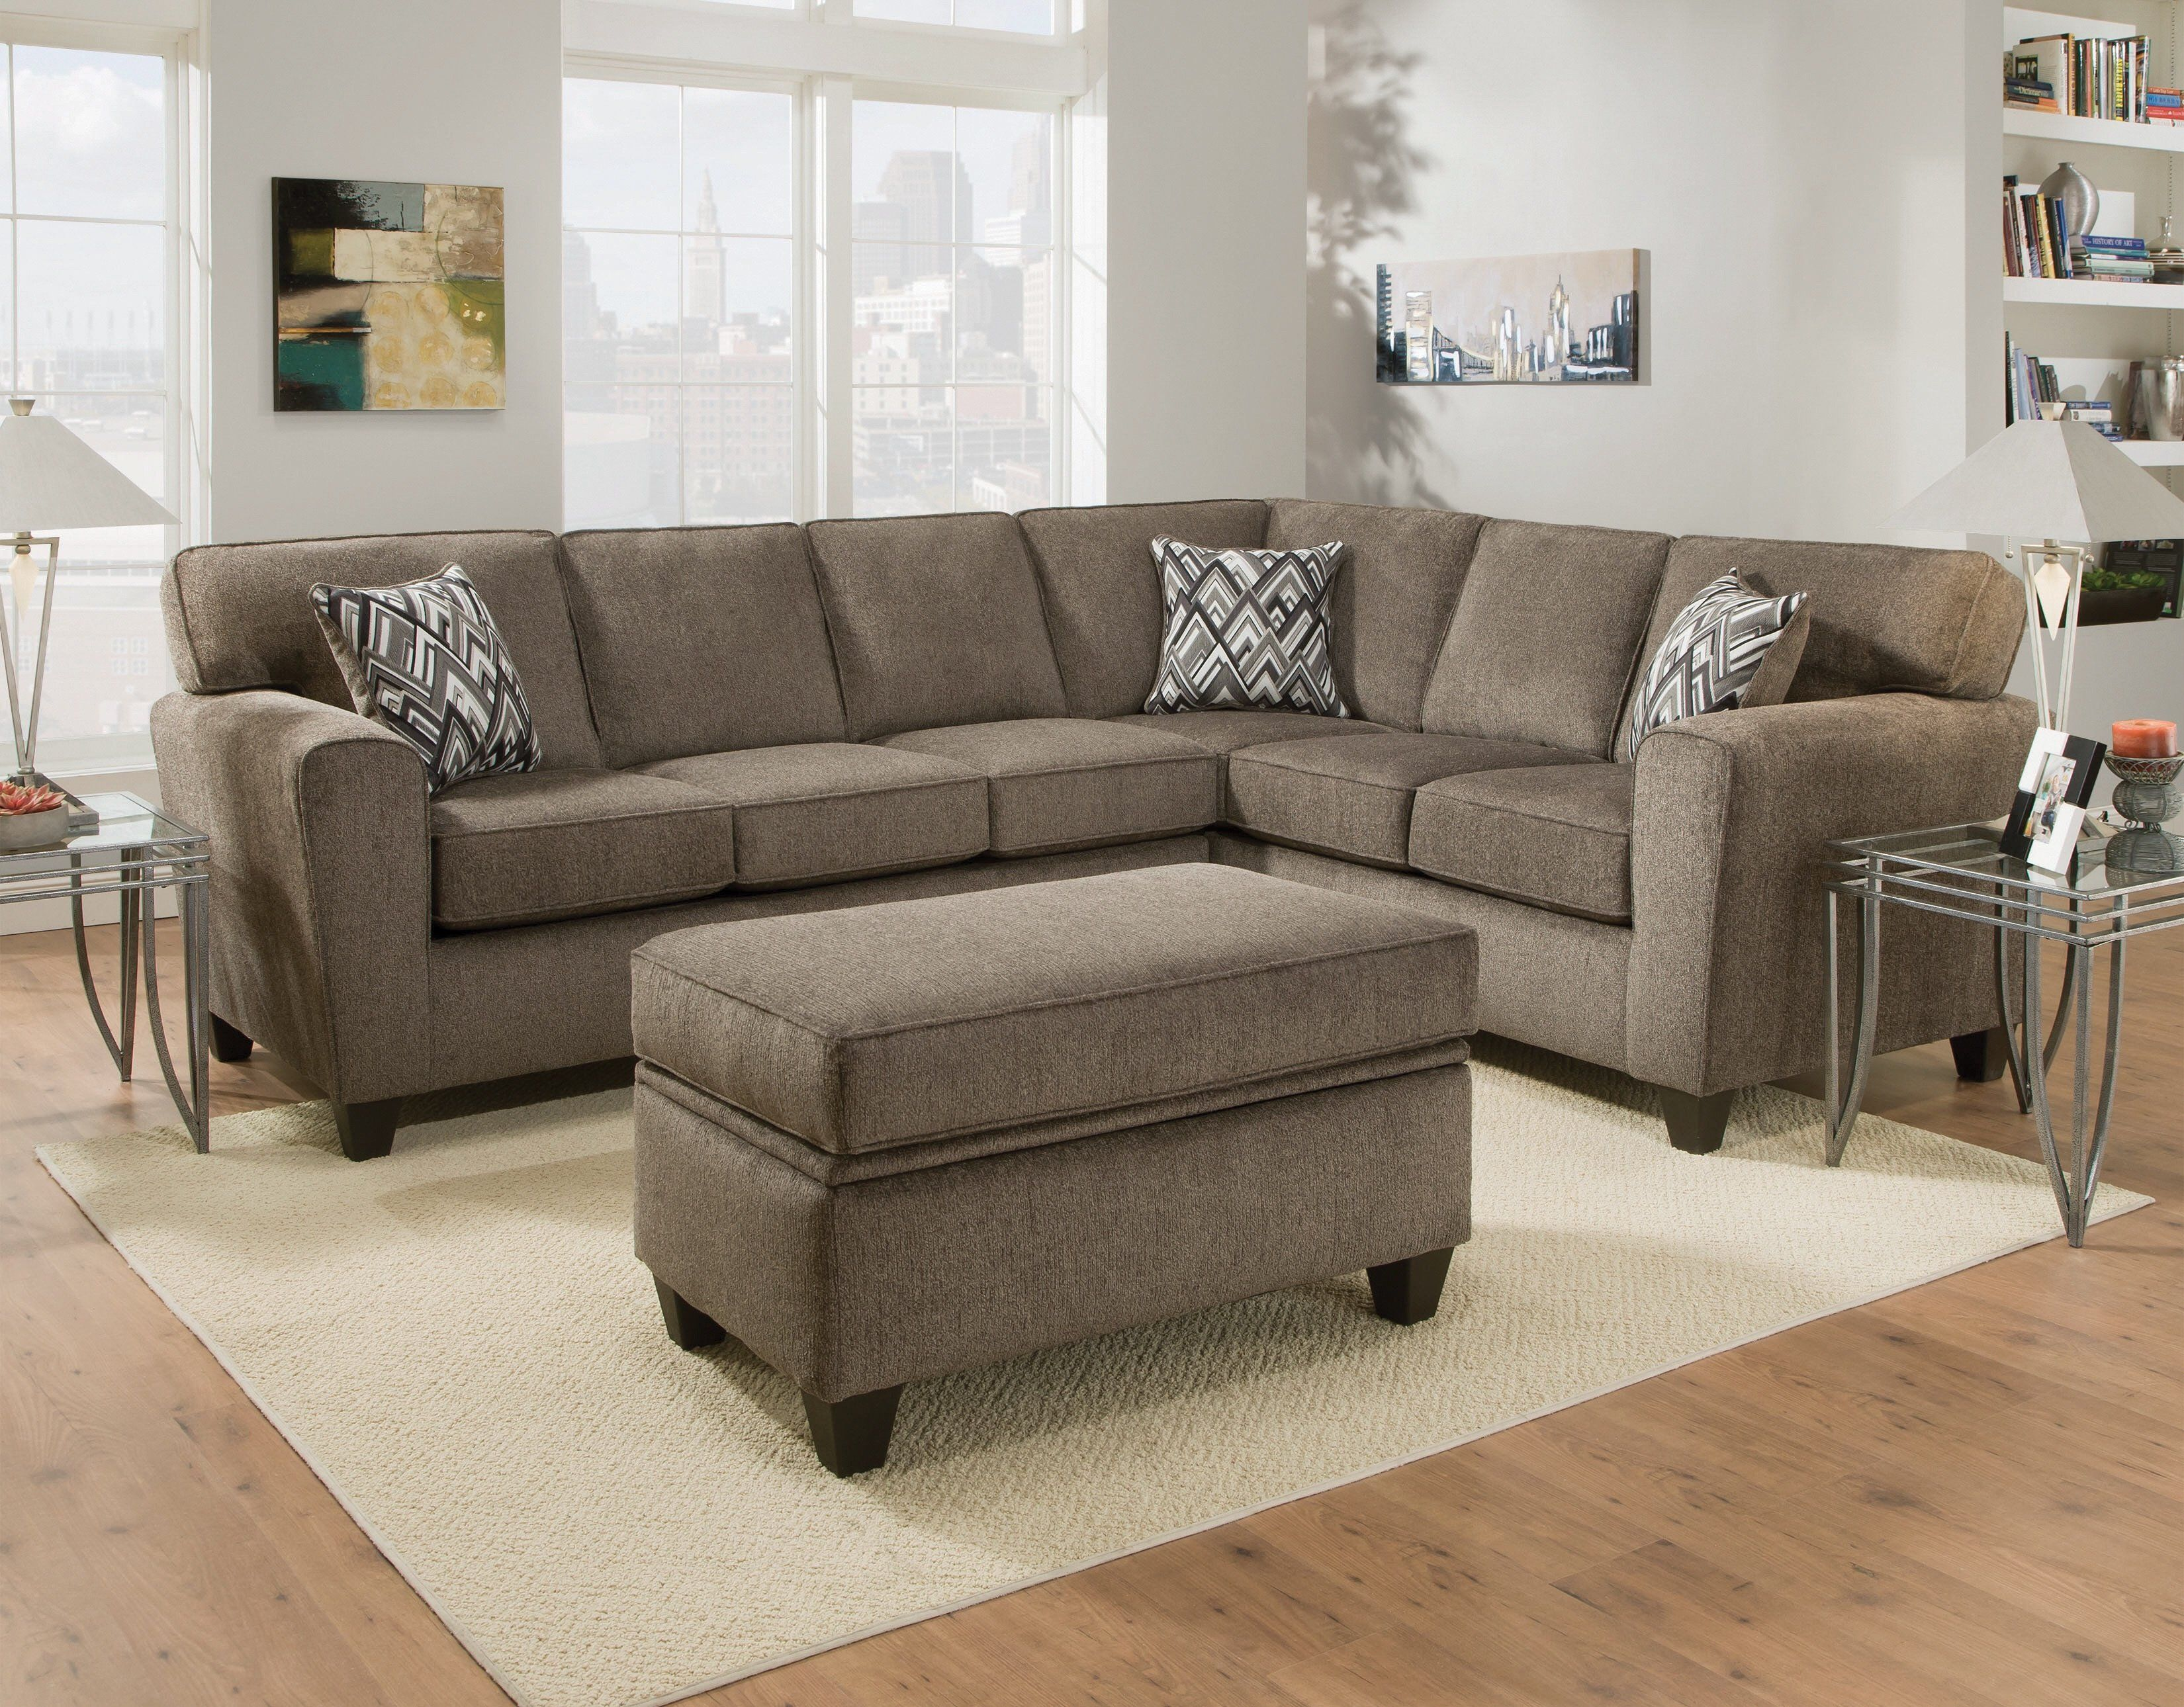 Remarkable Weekly Or Monthly Zingzang Couch Set For The Home Ibusinesslaw Wood Chair Design Ideas Ibusinesslaworg